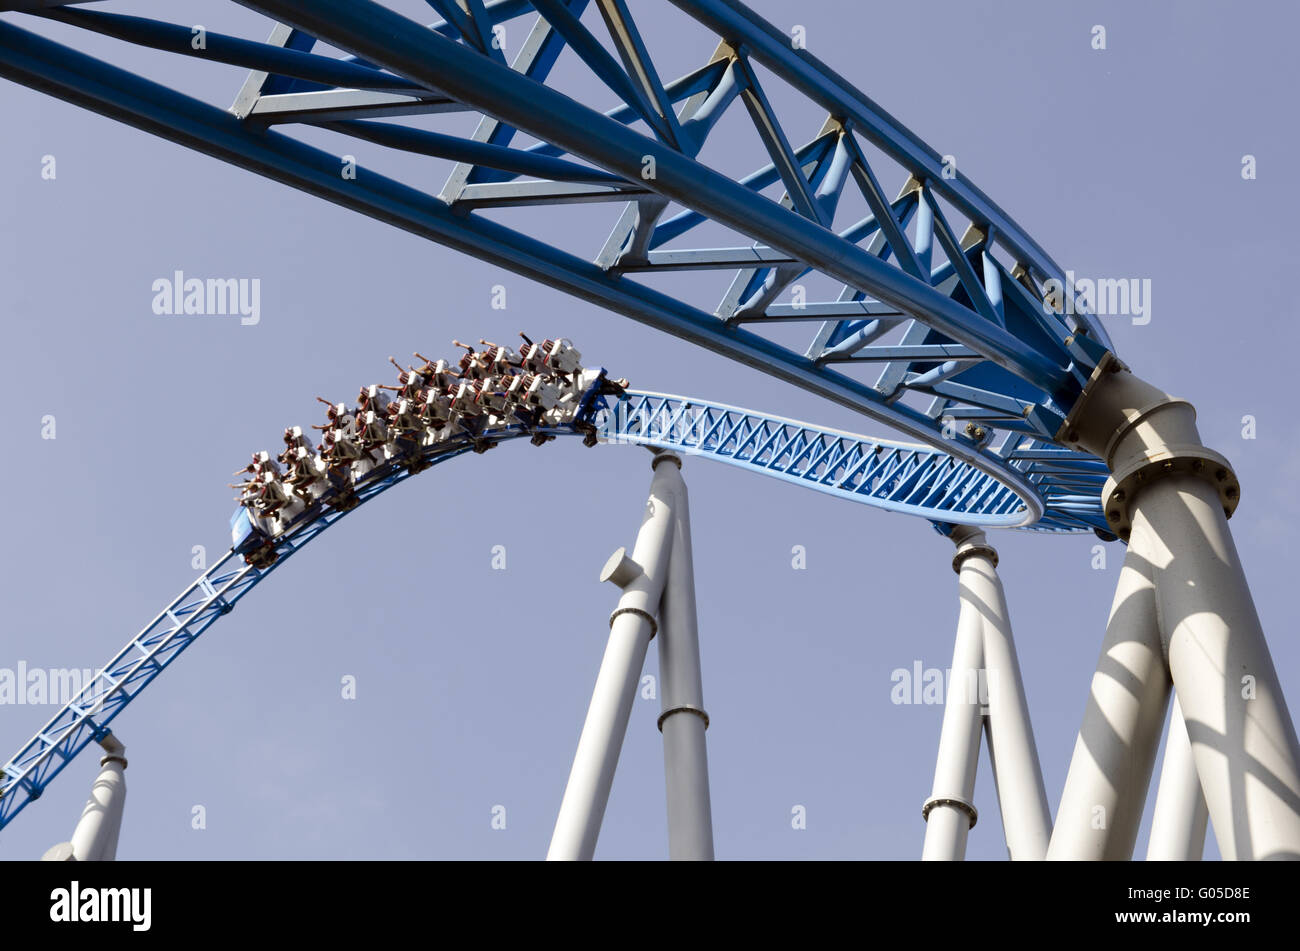 Blue Fire Rollercoaster - Stock Image